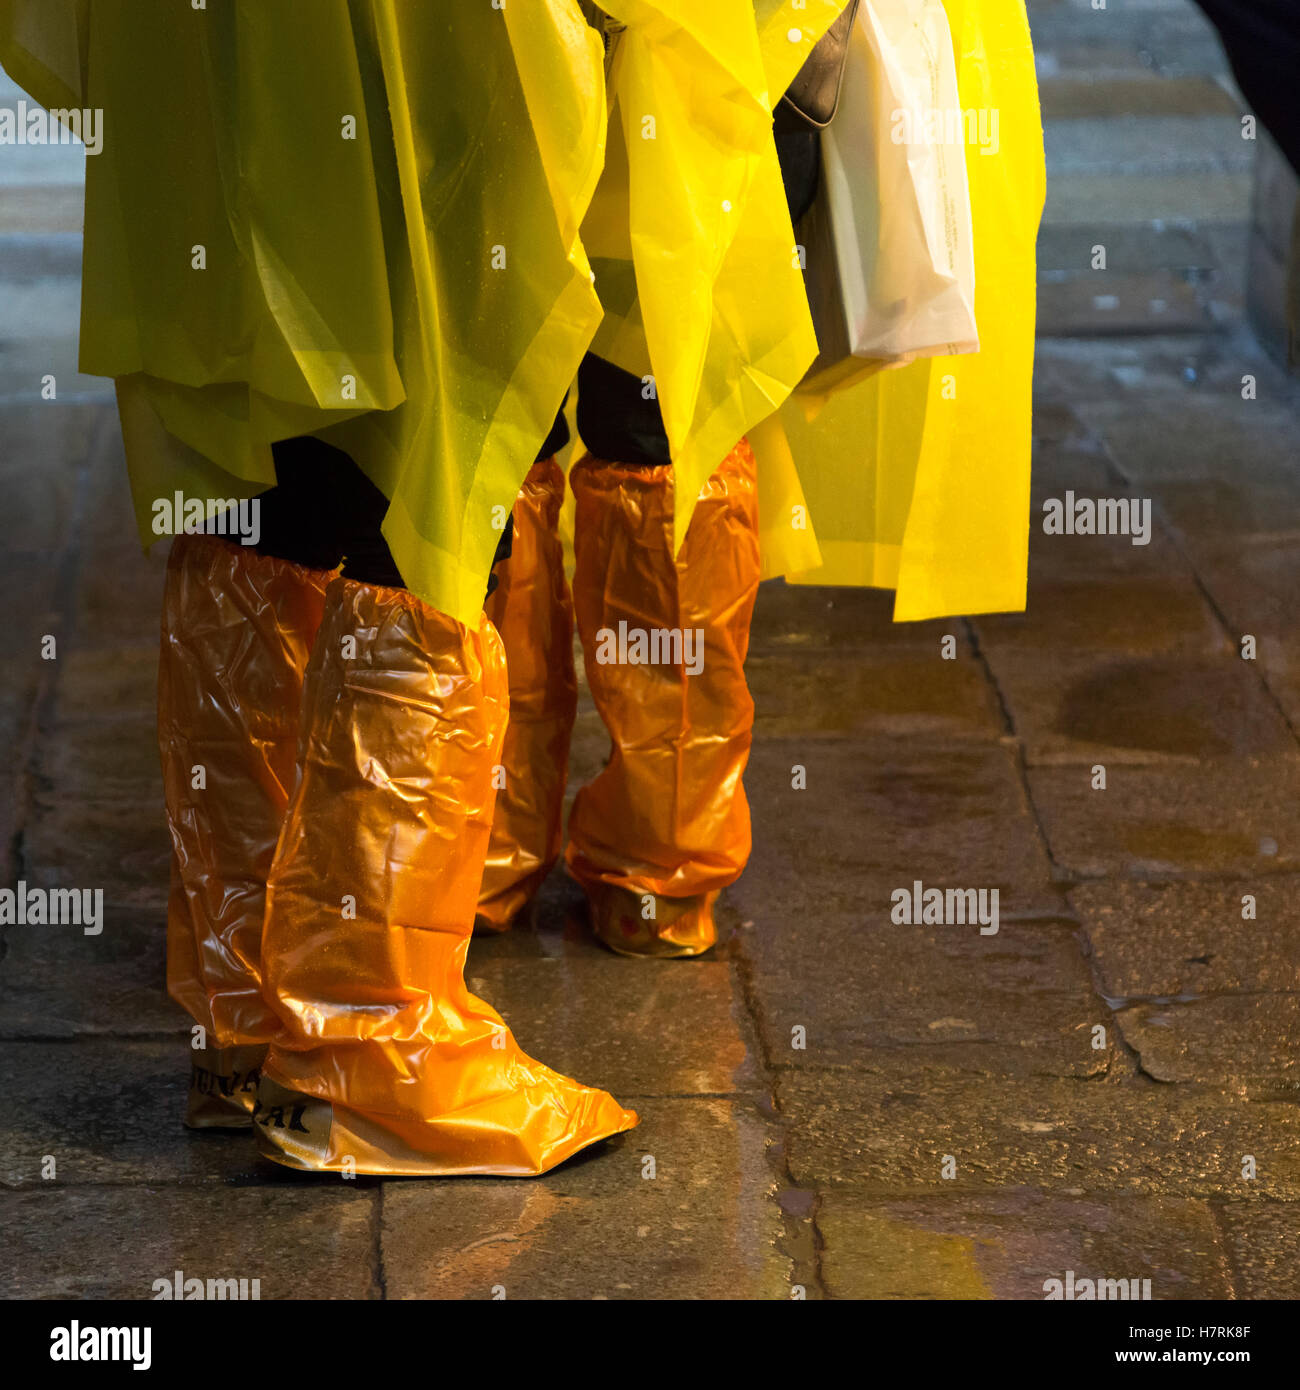 People standing with yellow rain ponchos and footwear covered in orange plastic covers; Venice, Italy - Stock Image